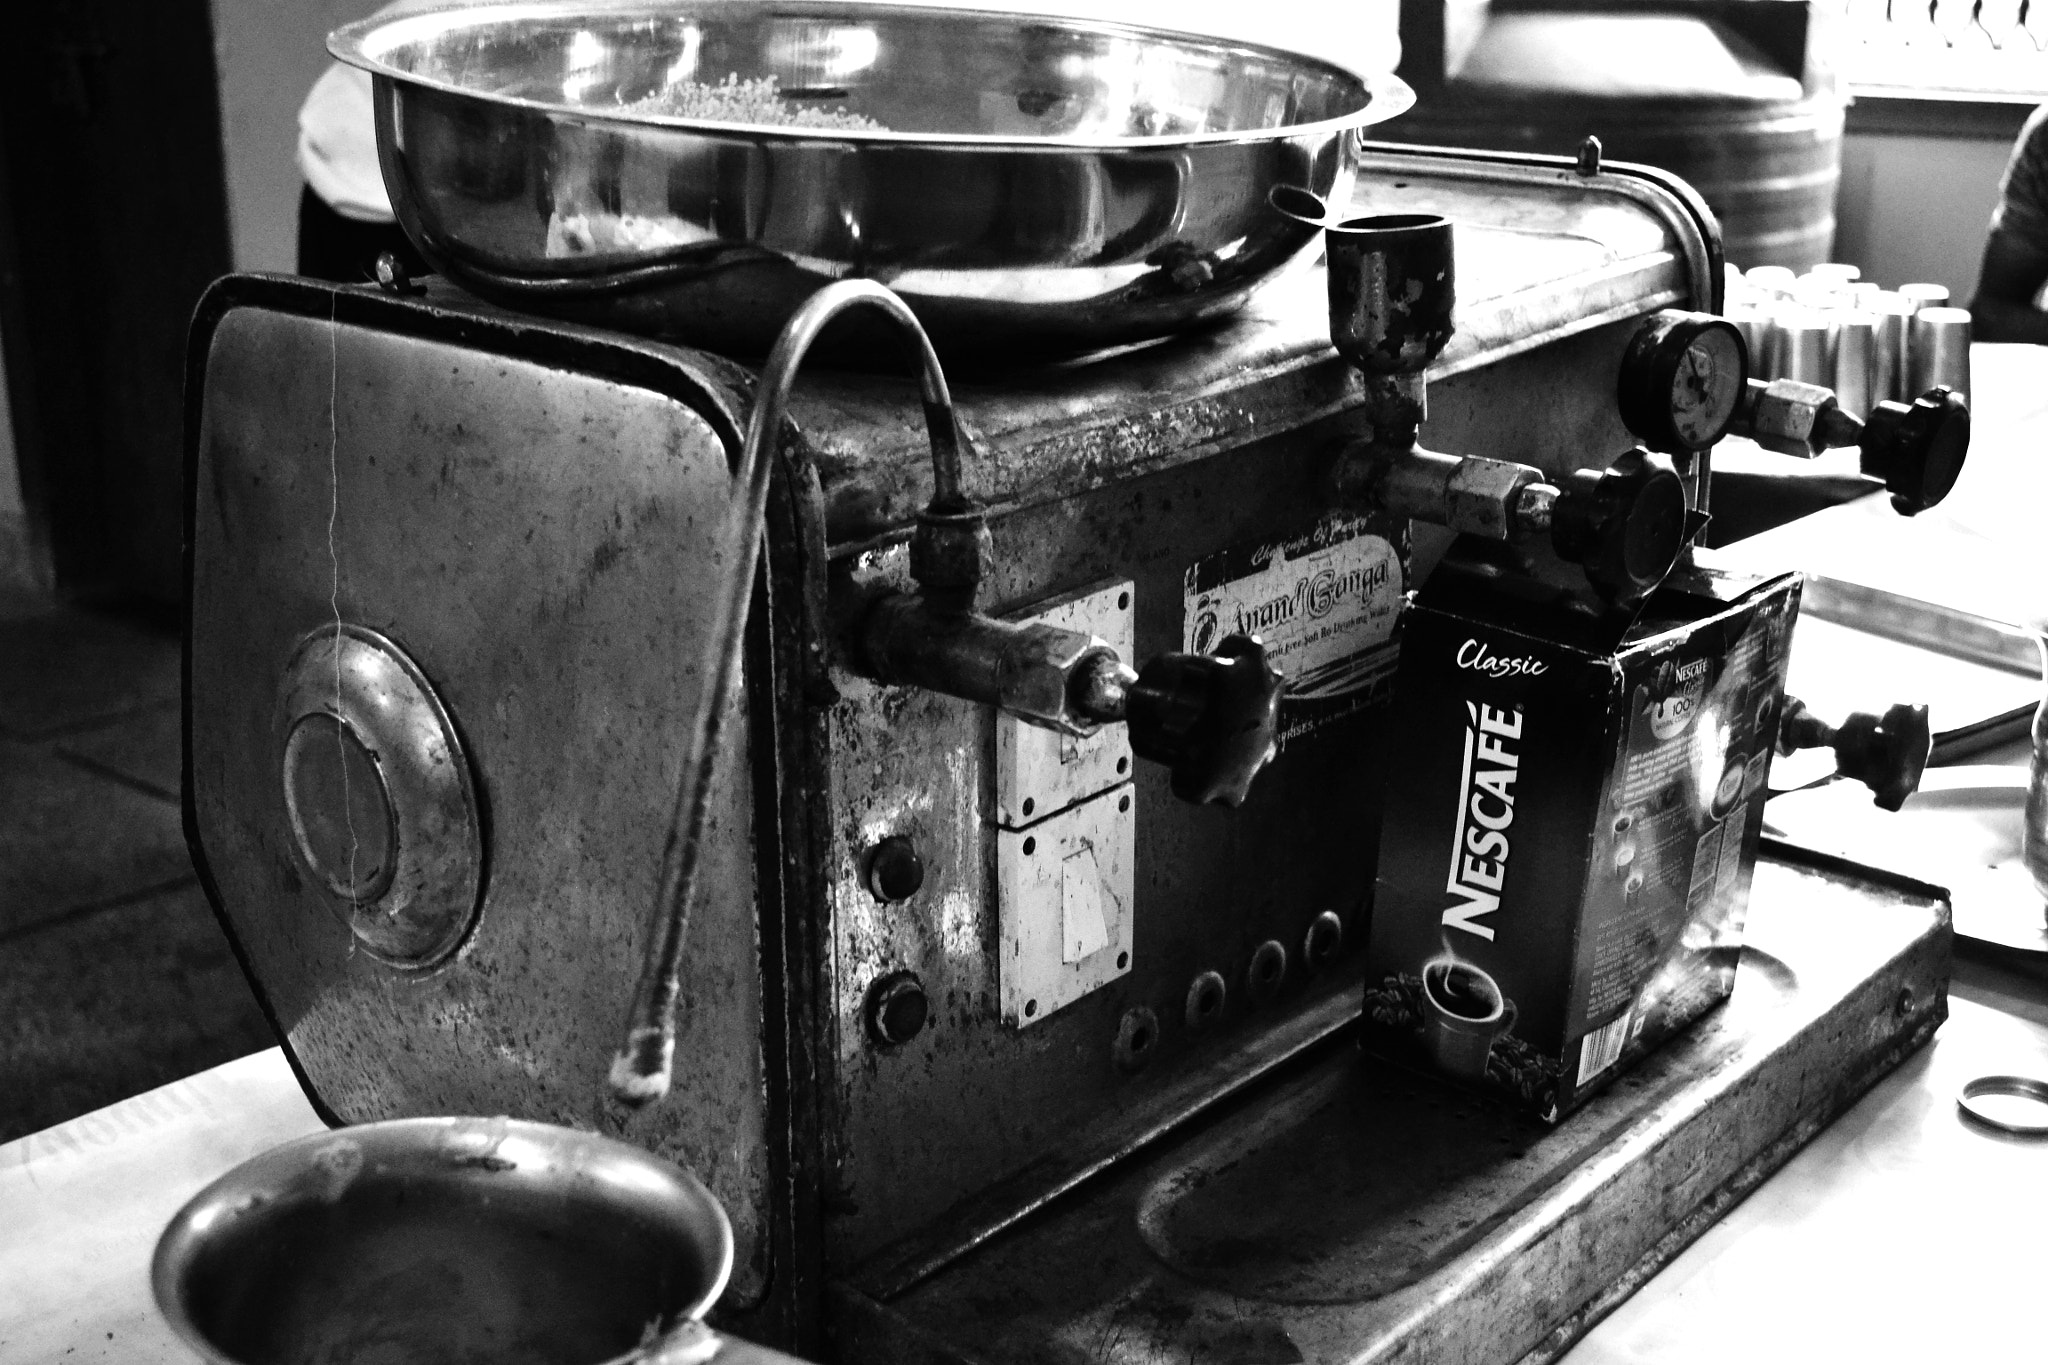 Photograph The Coffee machine!! by Abhishek Tyagi on 500px